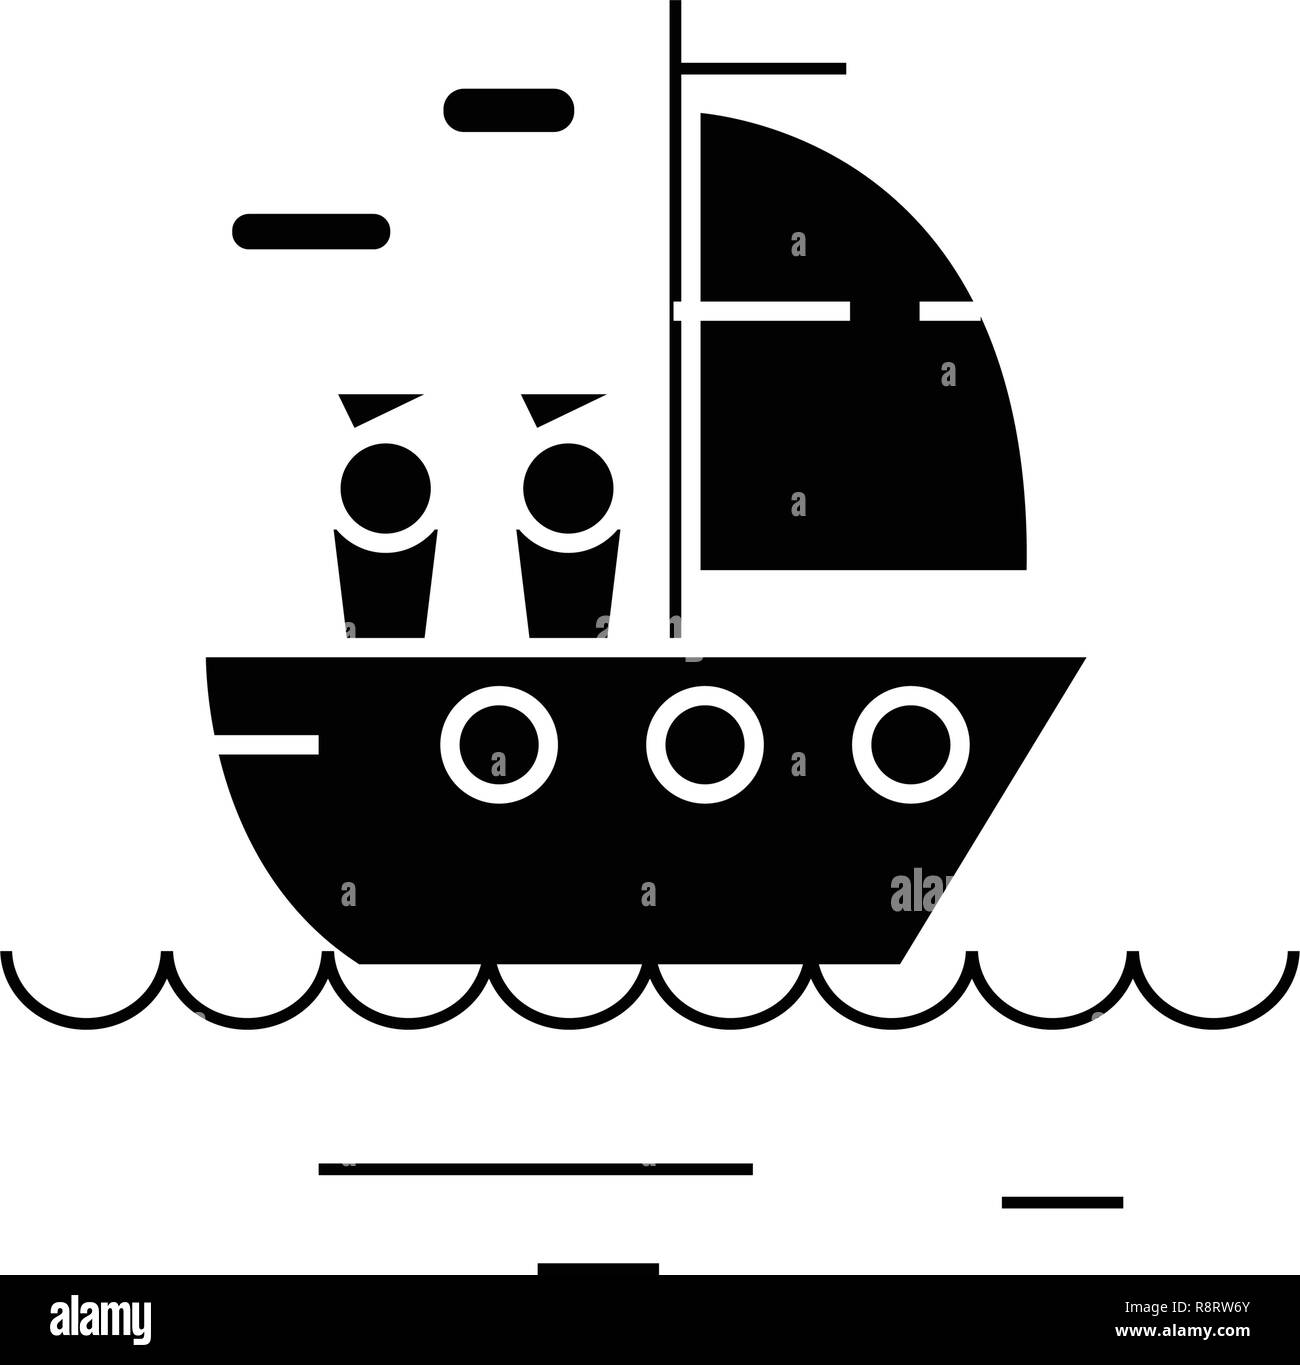 Yacht sailing black vector concept icon. Yacht sailing flat illustration, sign - Stock Image